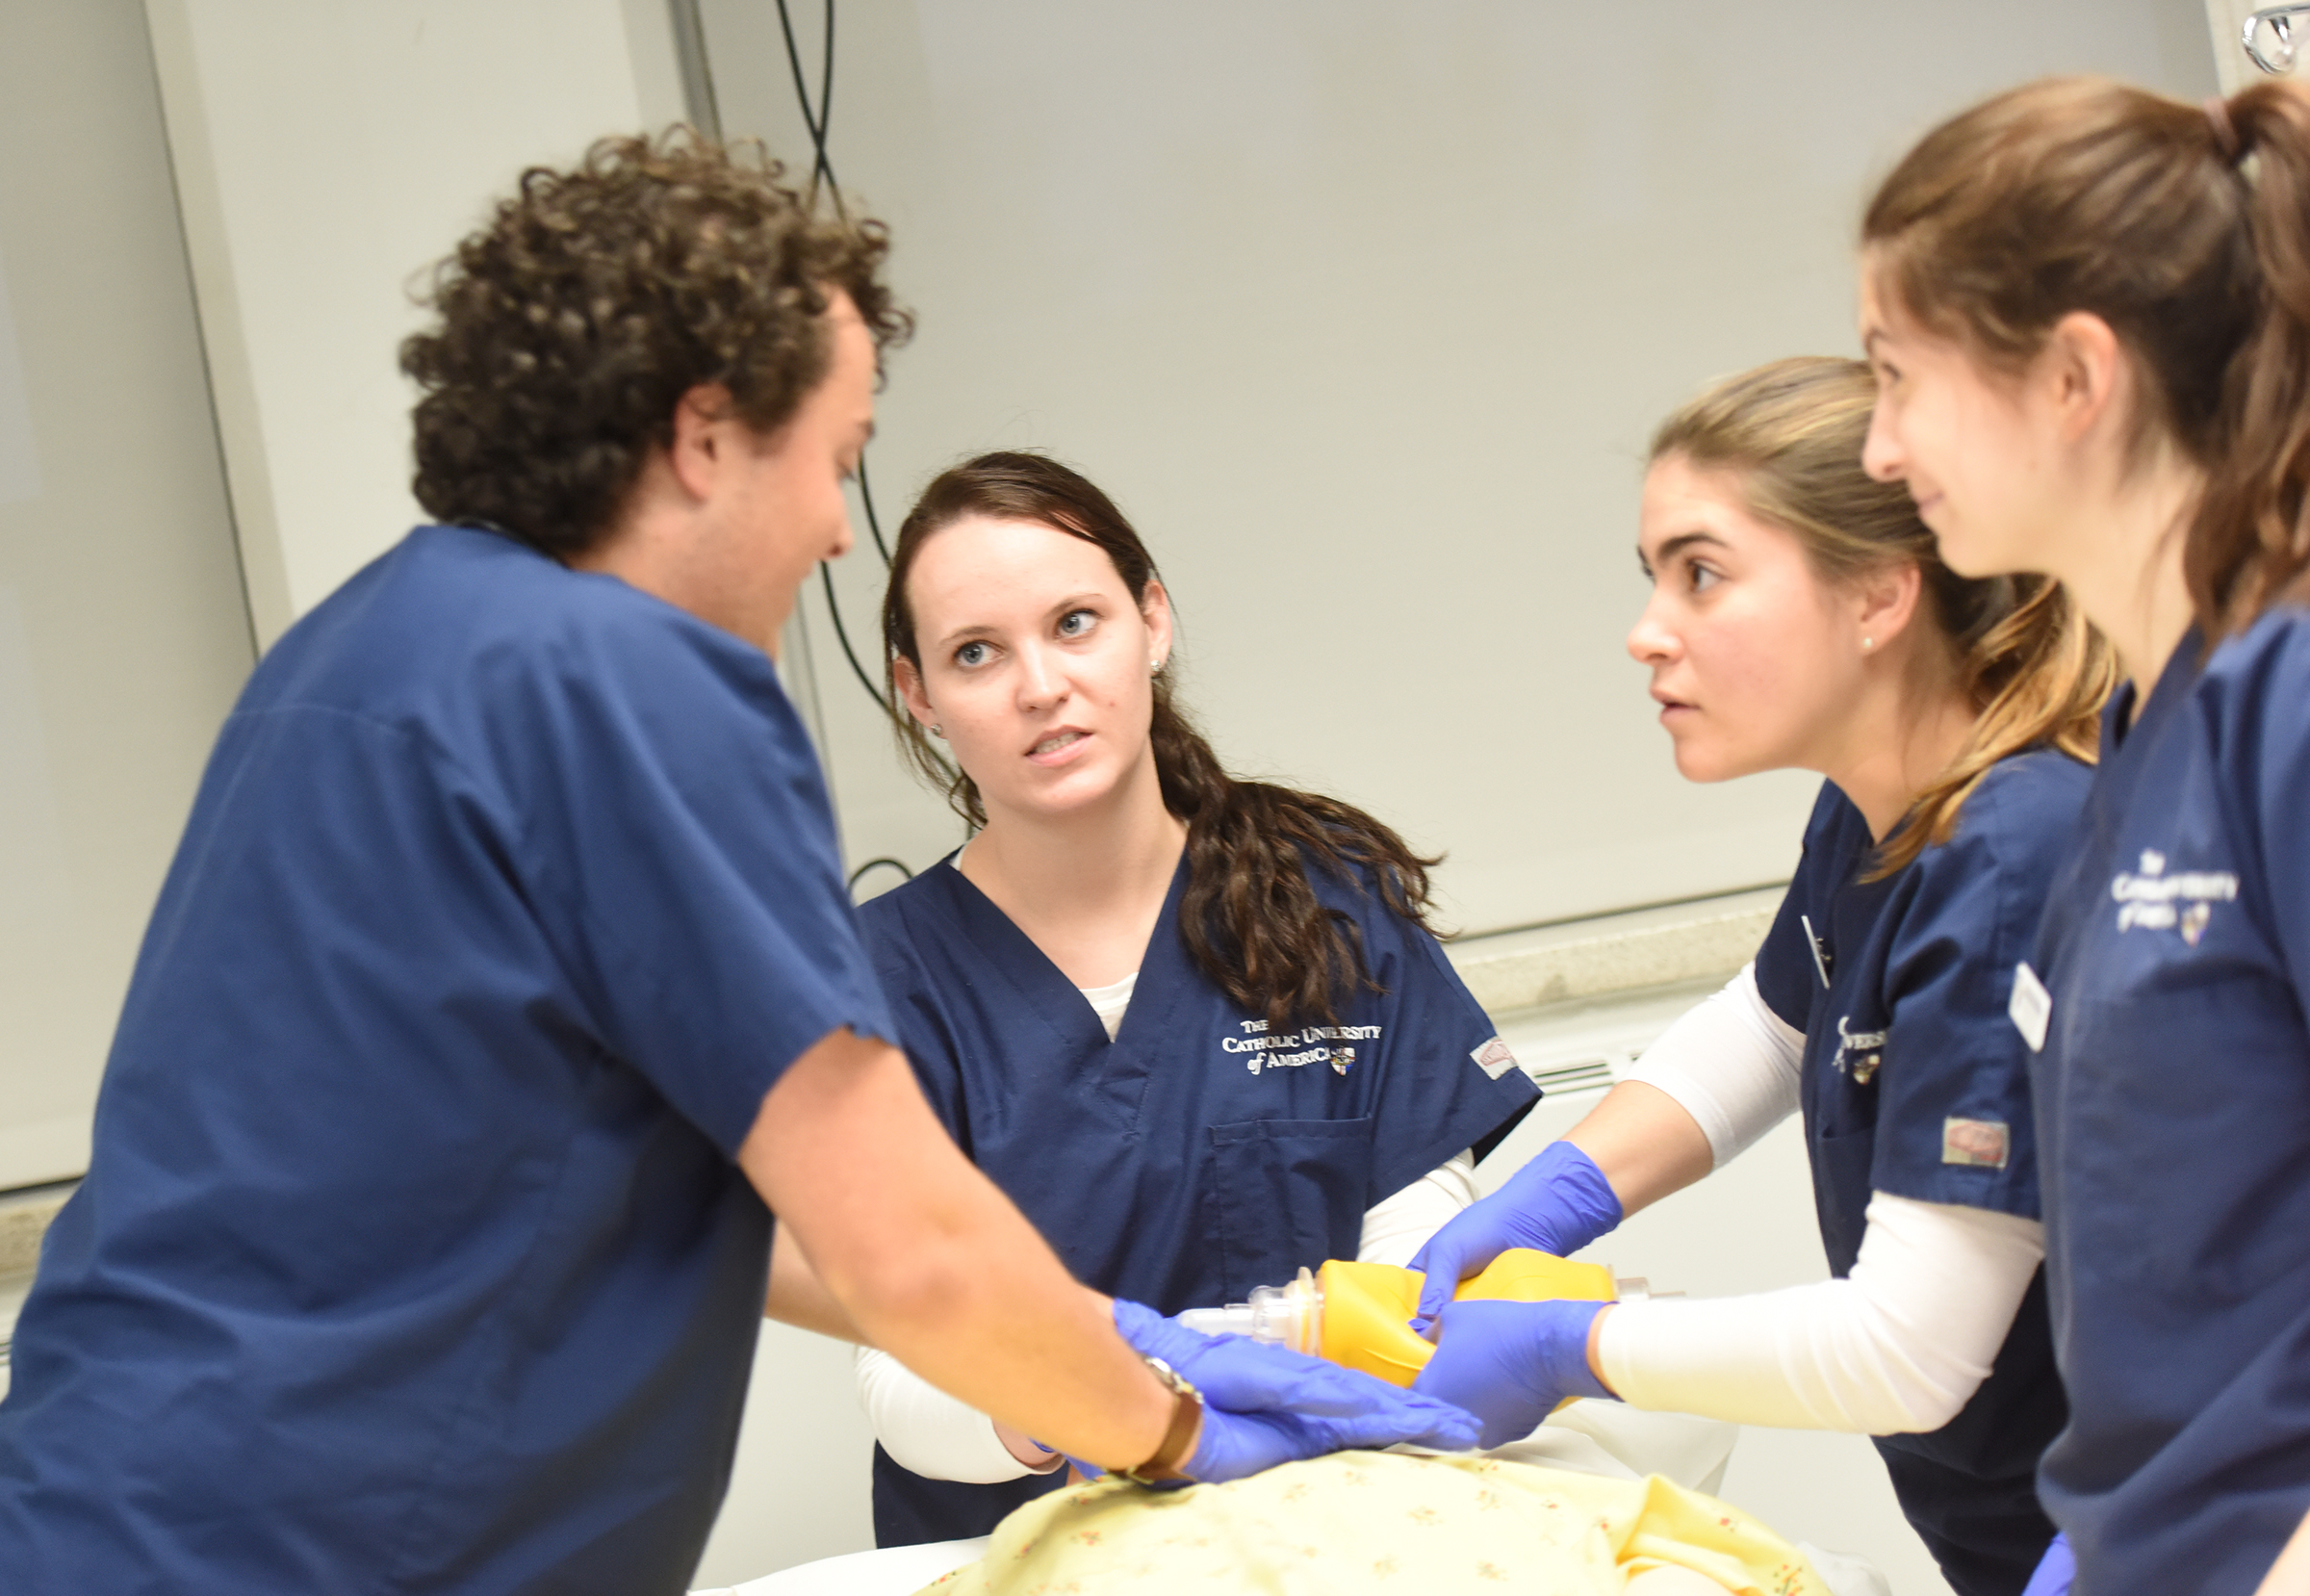 Nursing students demonstrate new equipment